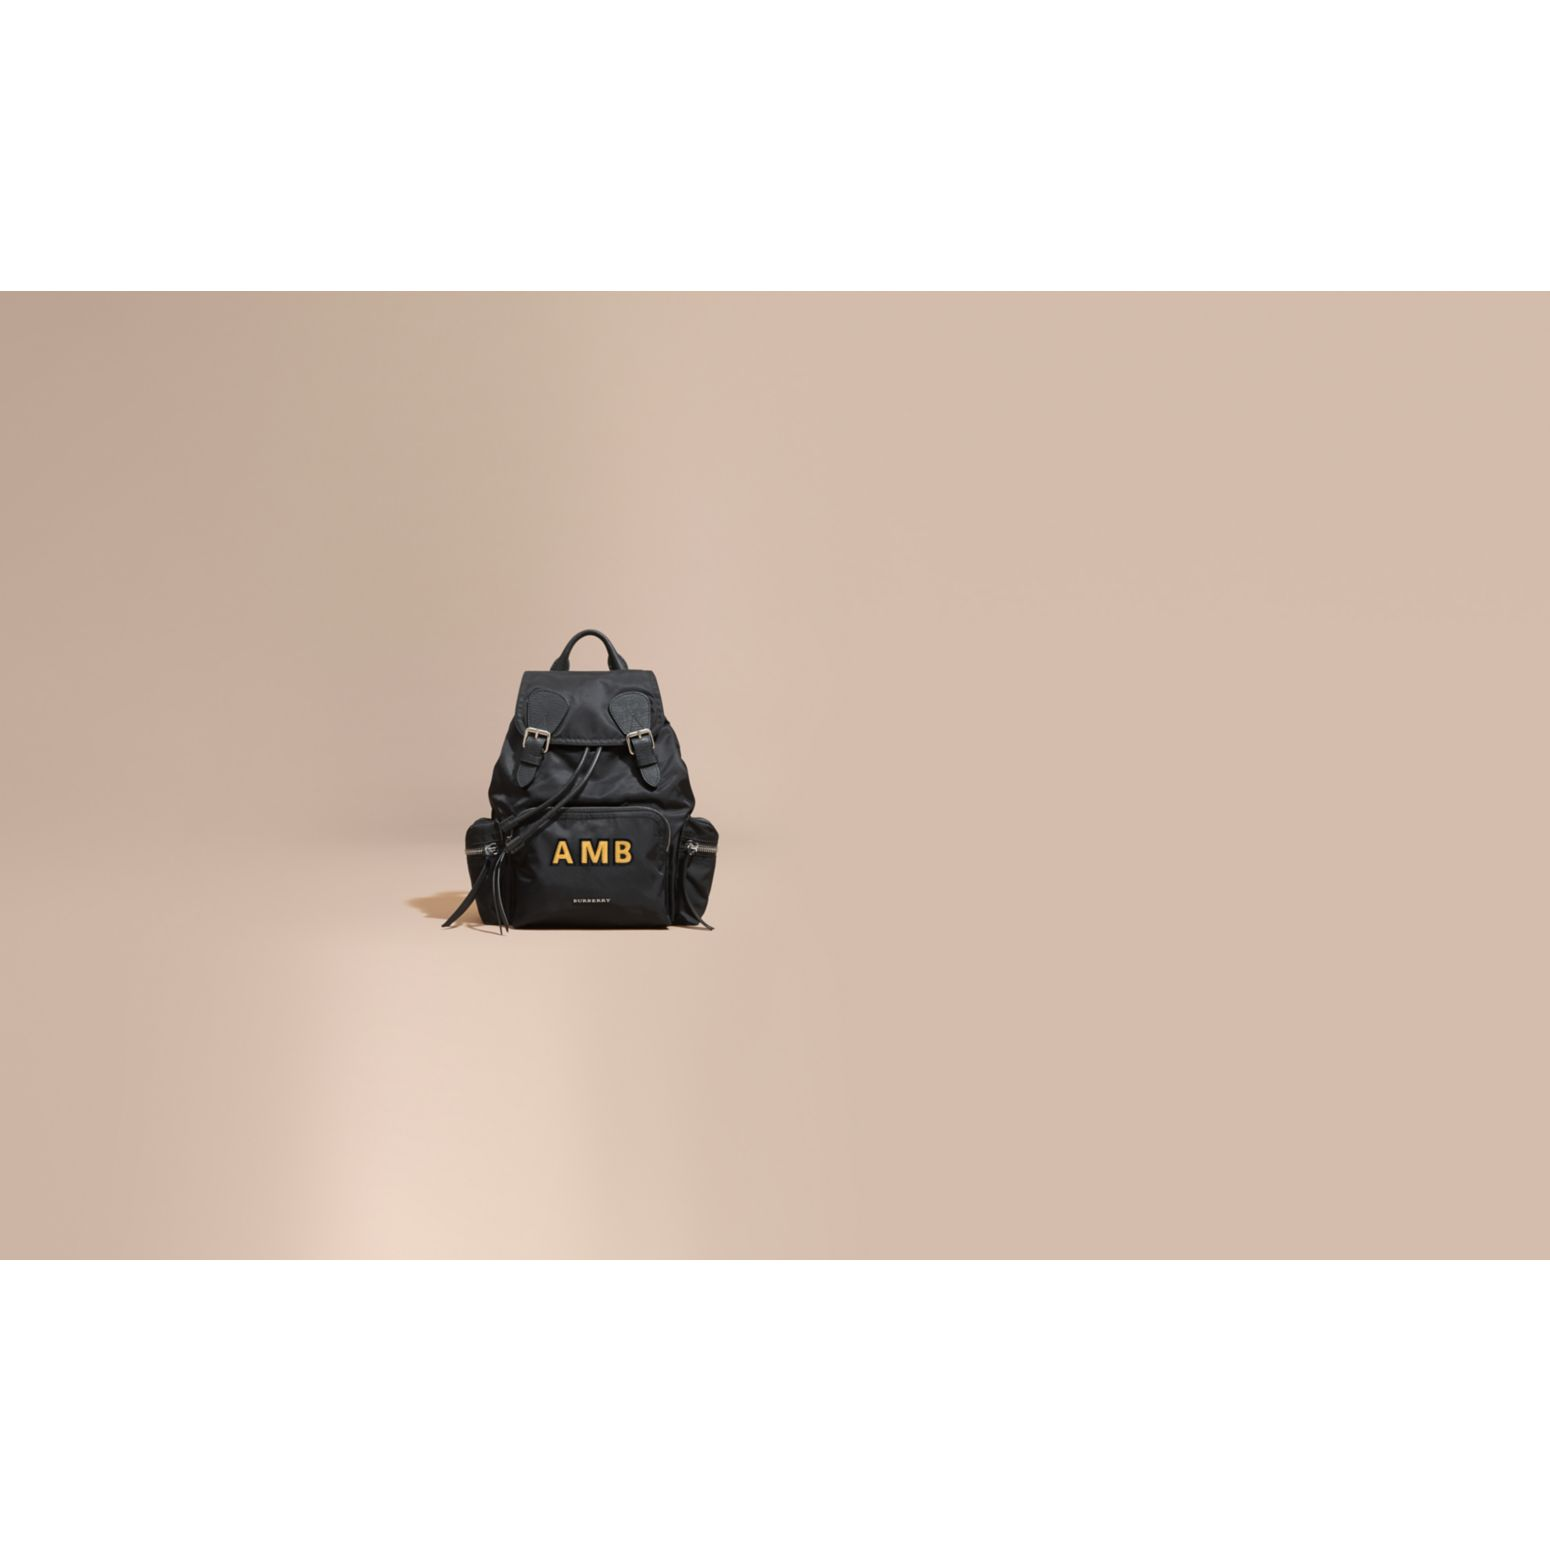 Sac The Rucksack moyen en nylon technique et cuir (Noir/noir) - Femme | Burberry Canada - photo de la galerie 1